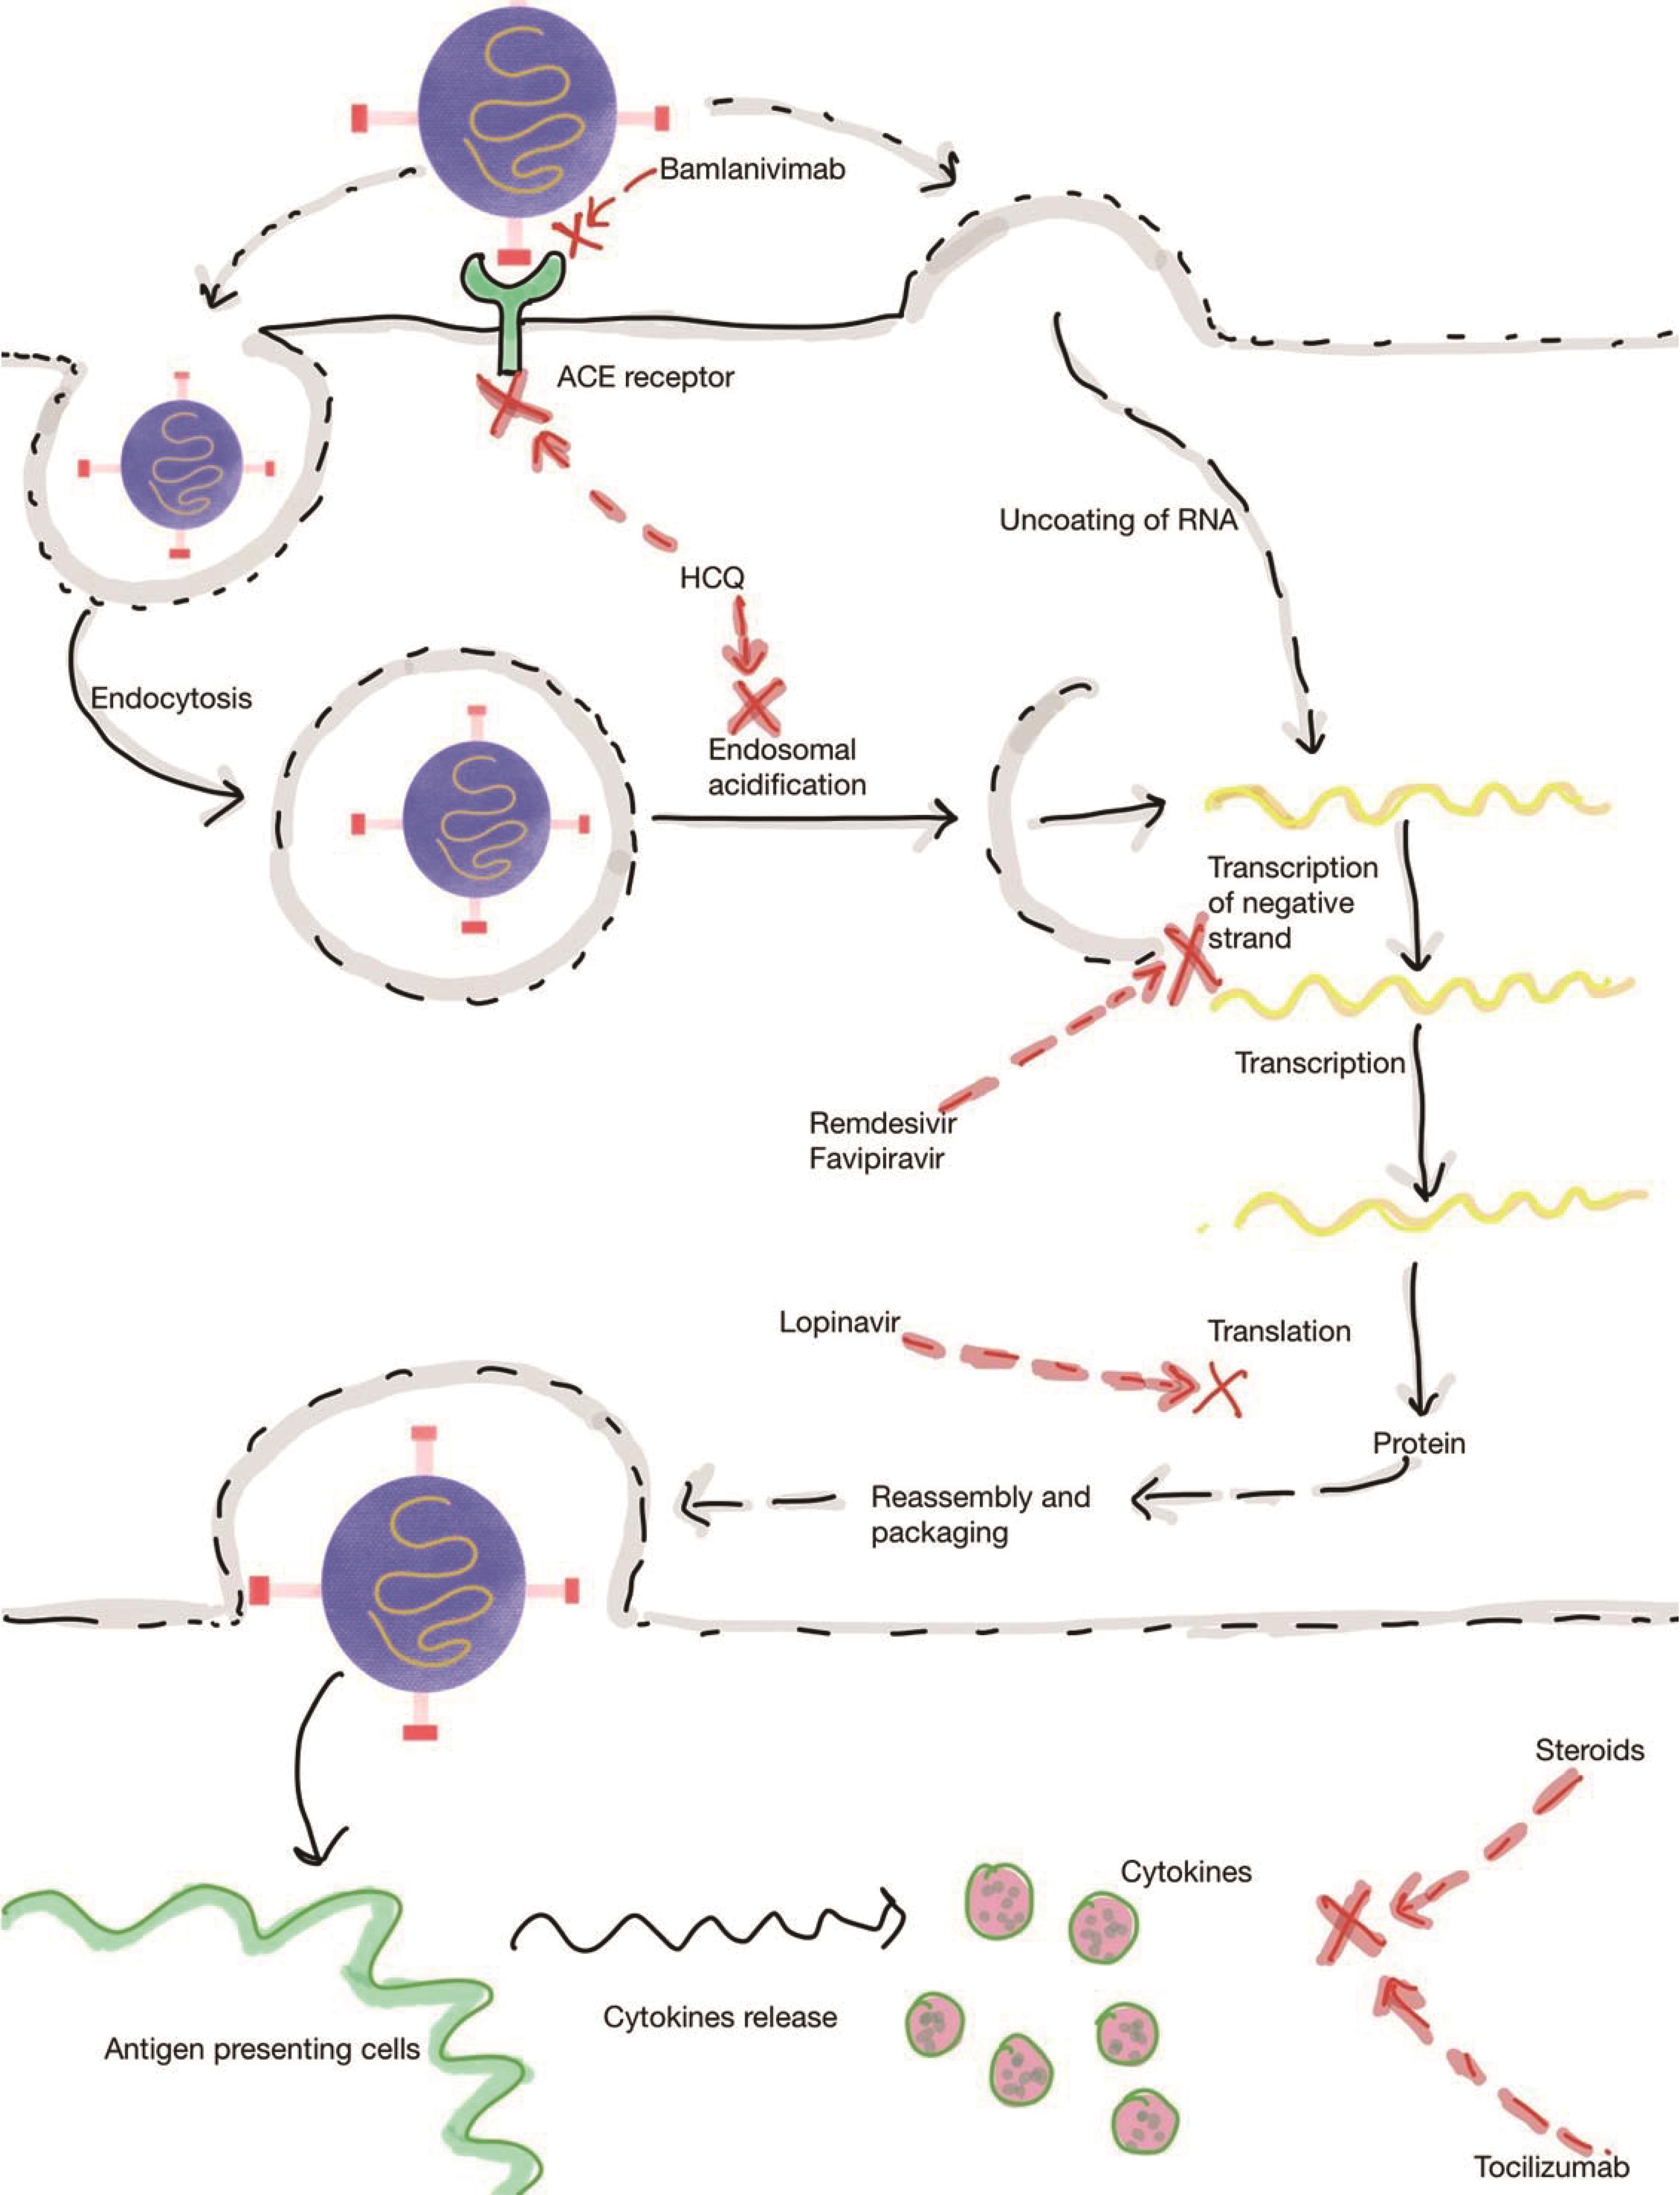 Mechanism of action of drugs used in the treatment for COVID-19.